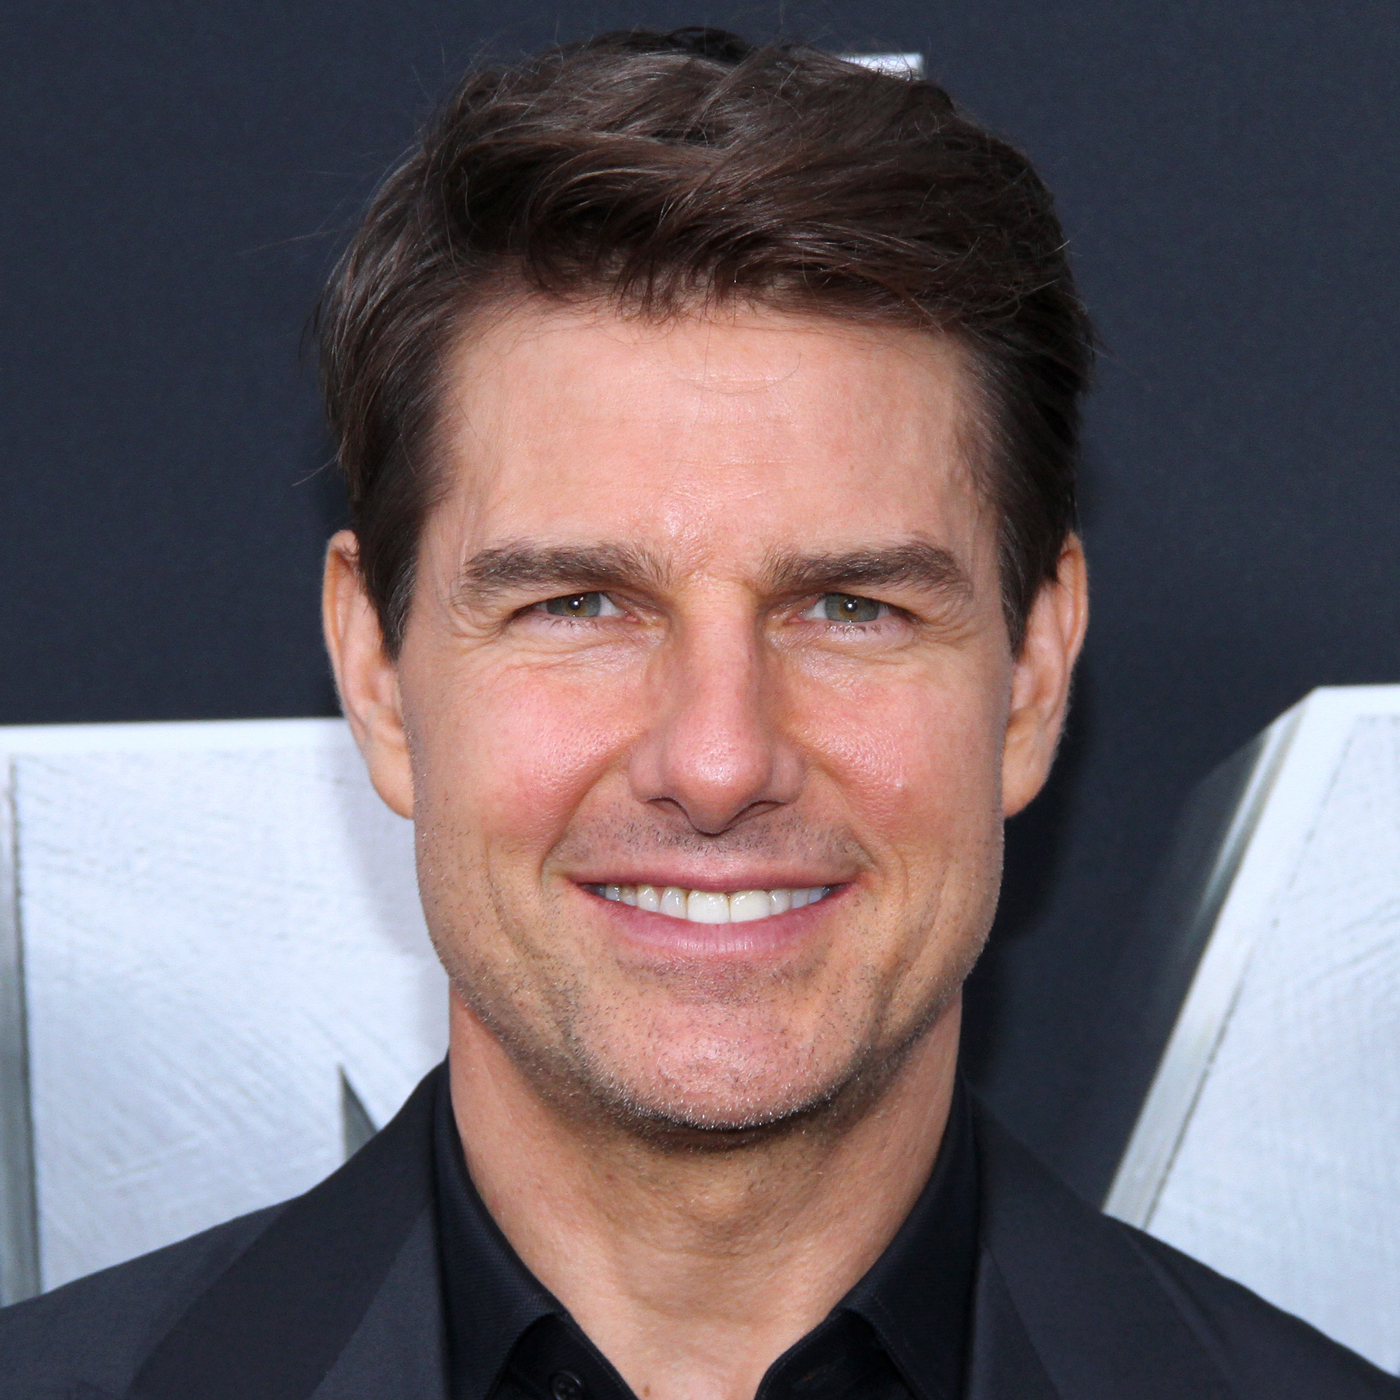 Tom Cruise's Changing Looks | InStyle.com